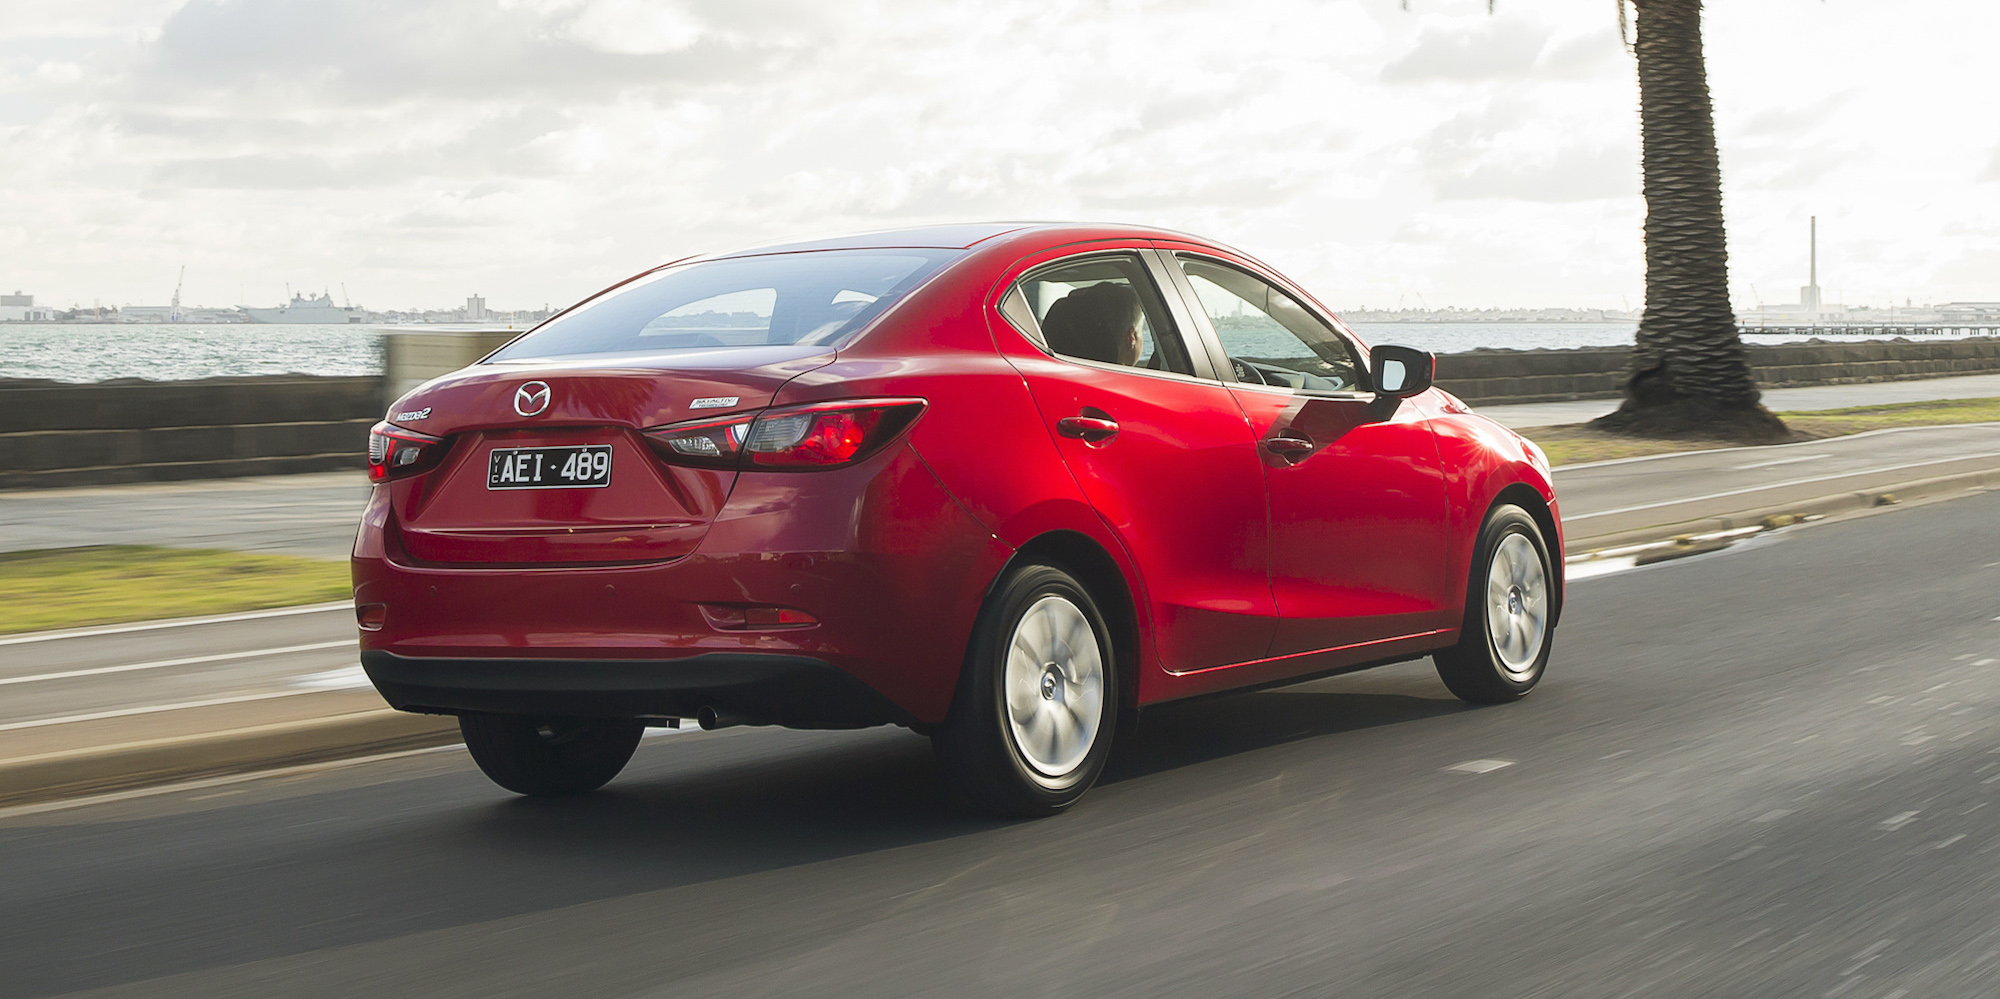 2015 Toyota Corolla Price >> 2016 Mazda 2 Sedan Review - photos | CarAdvice